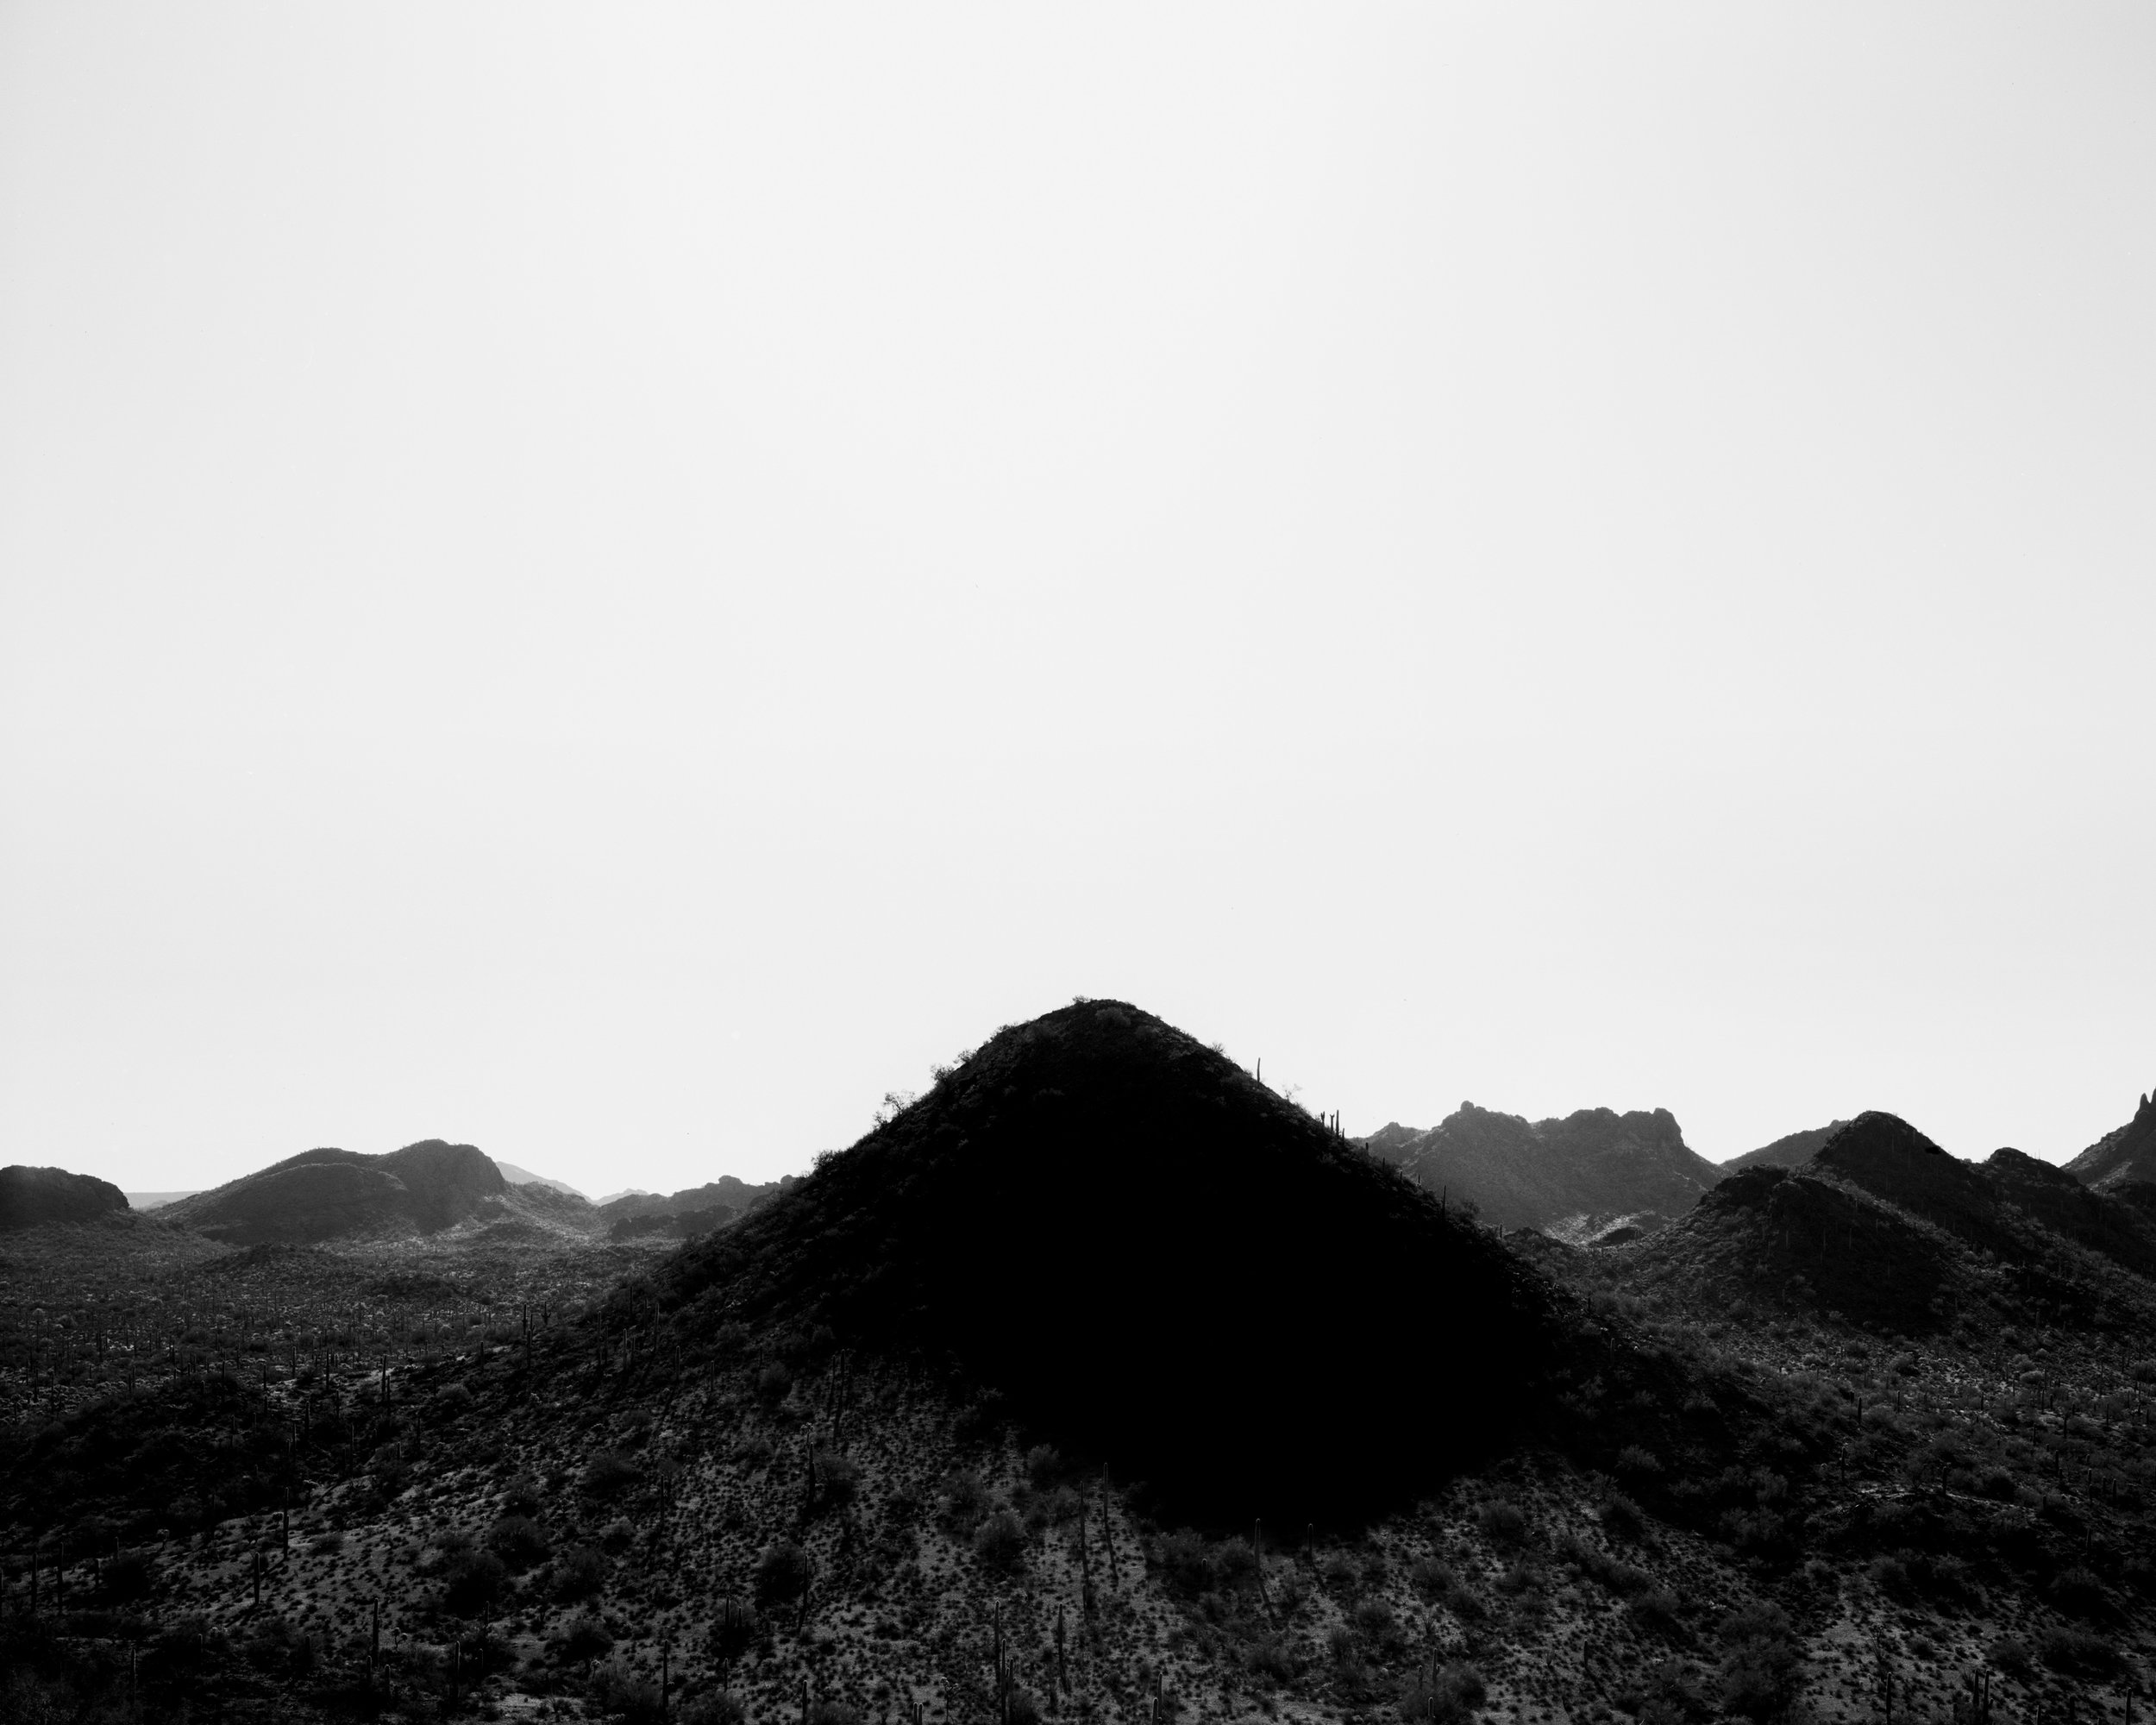 MICHAEL LUNDGREN  Cinder Cone, 2004  Gelatin Silver Print  Available sizes 20 x 24 in, ed. 10 + 2AP 32 x 40 in, ed. 3 + 1AP